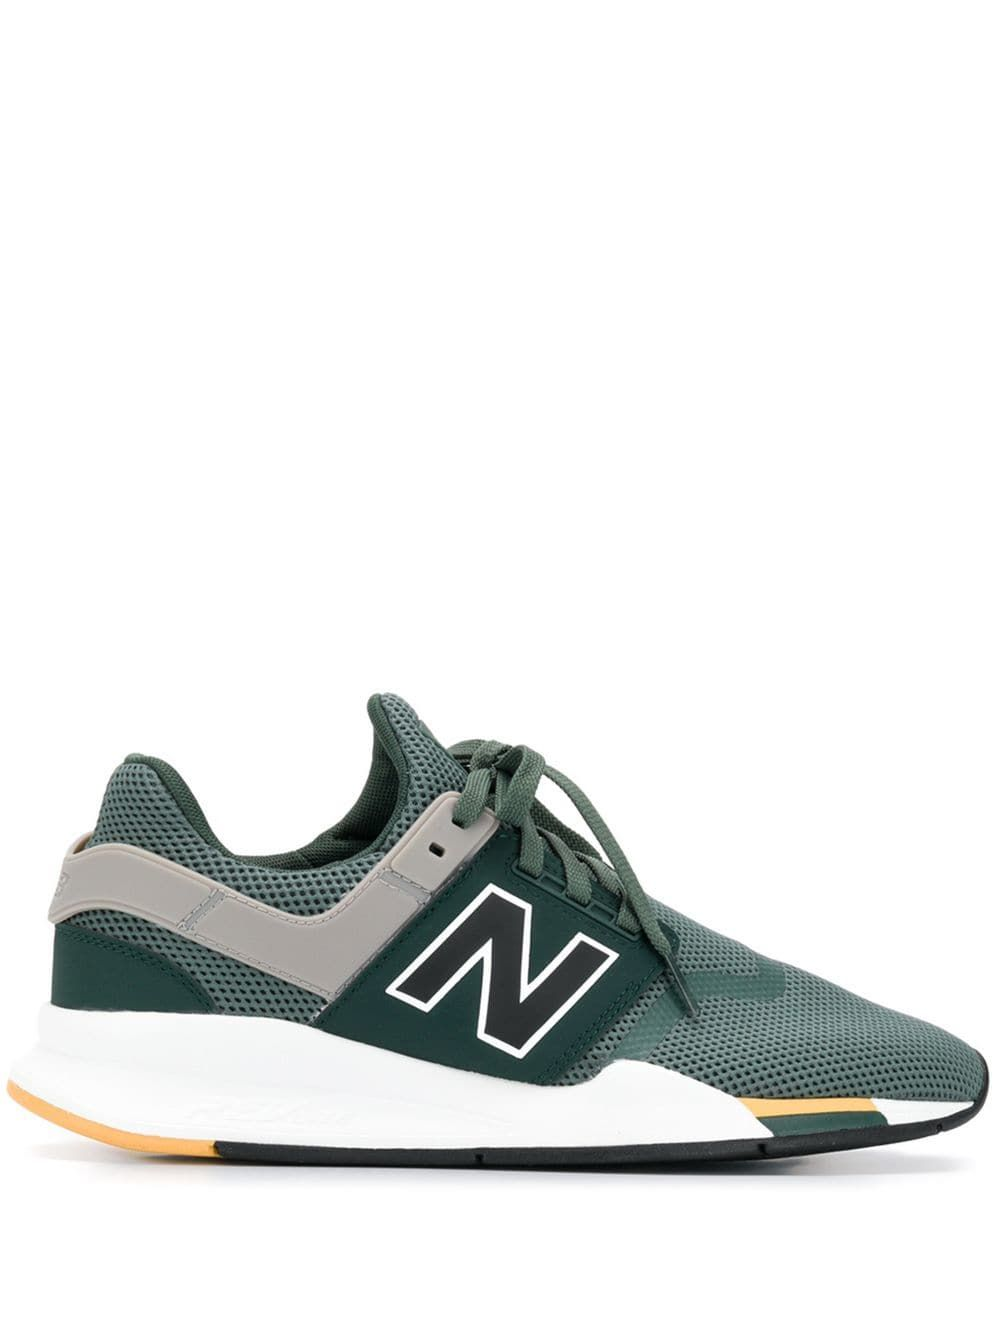 New Balance Ms247 Sneakers In Green